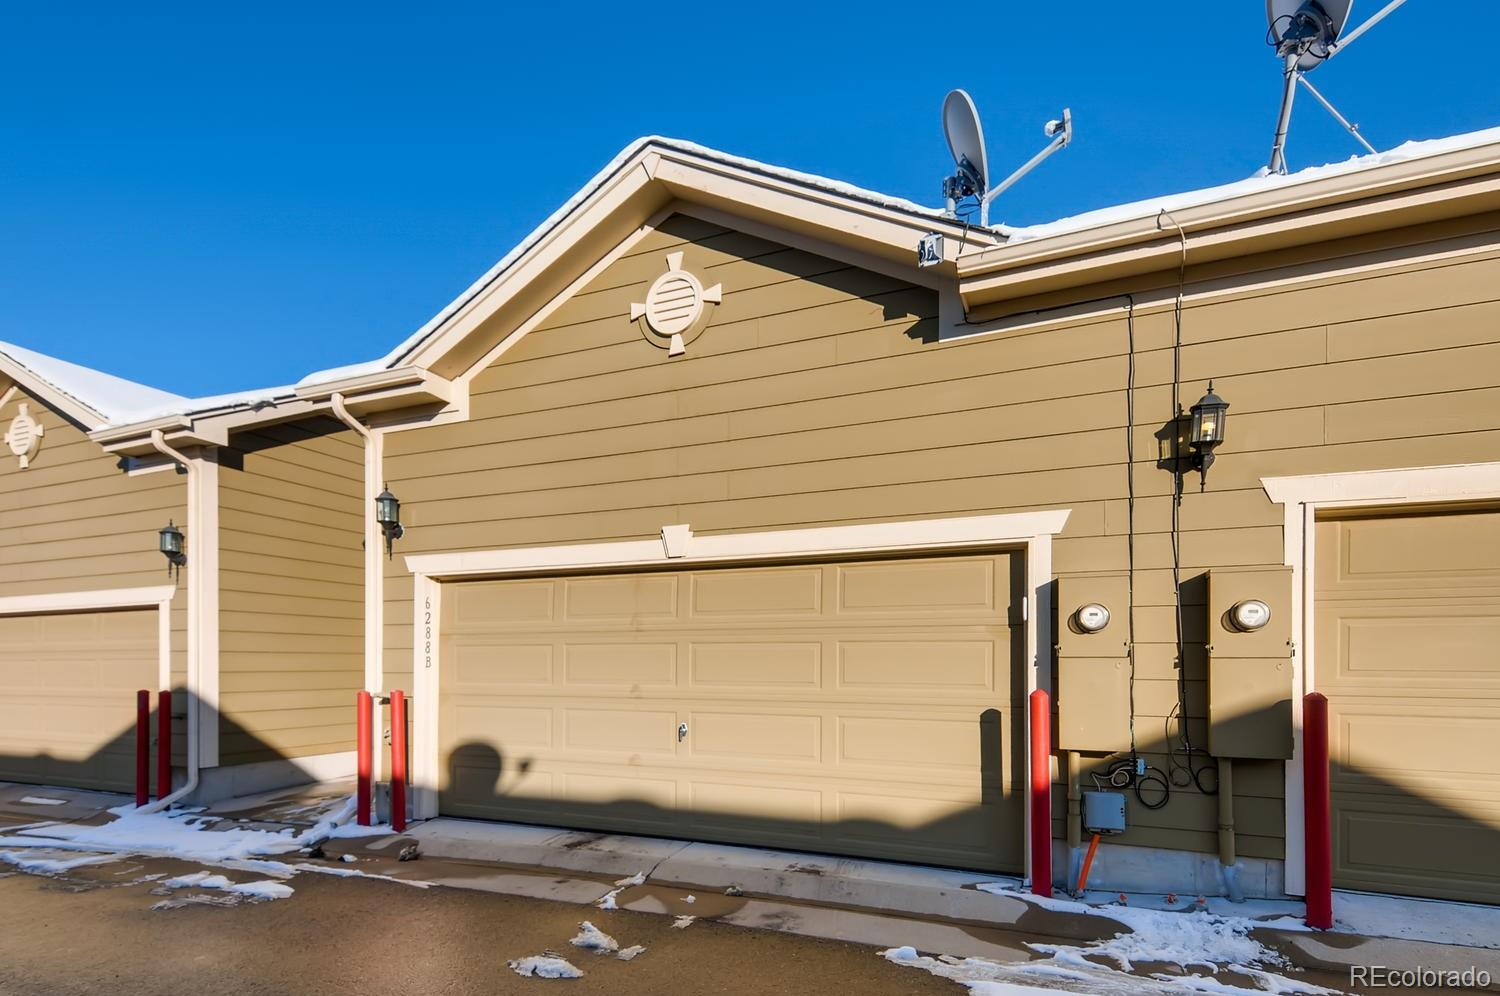 MLS# 7221066 - 36 - 6288 Orchard Court #B, Arvada, CO 80403